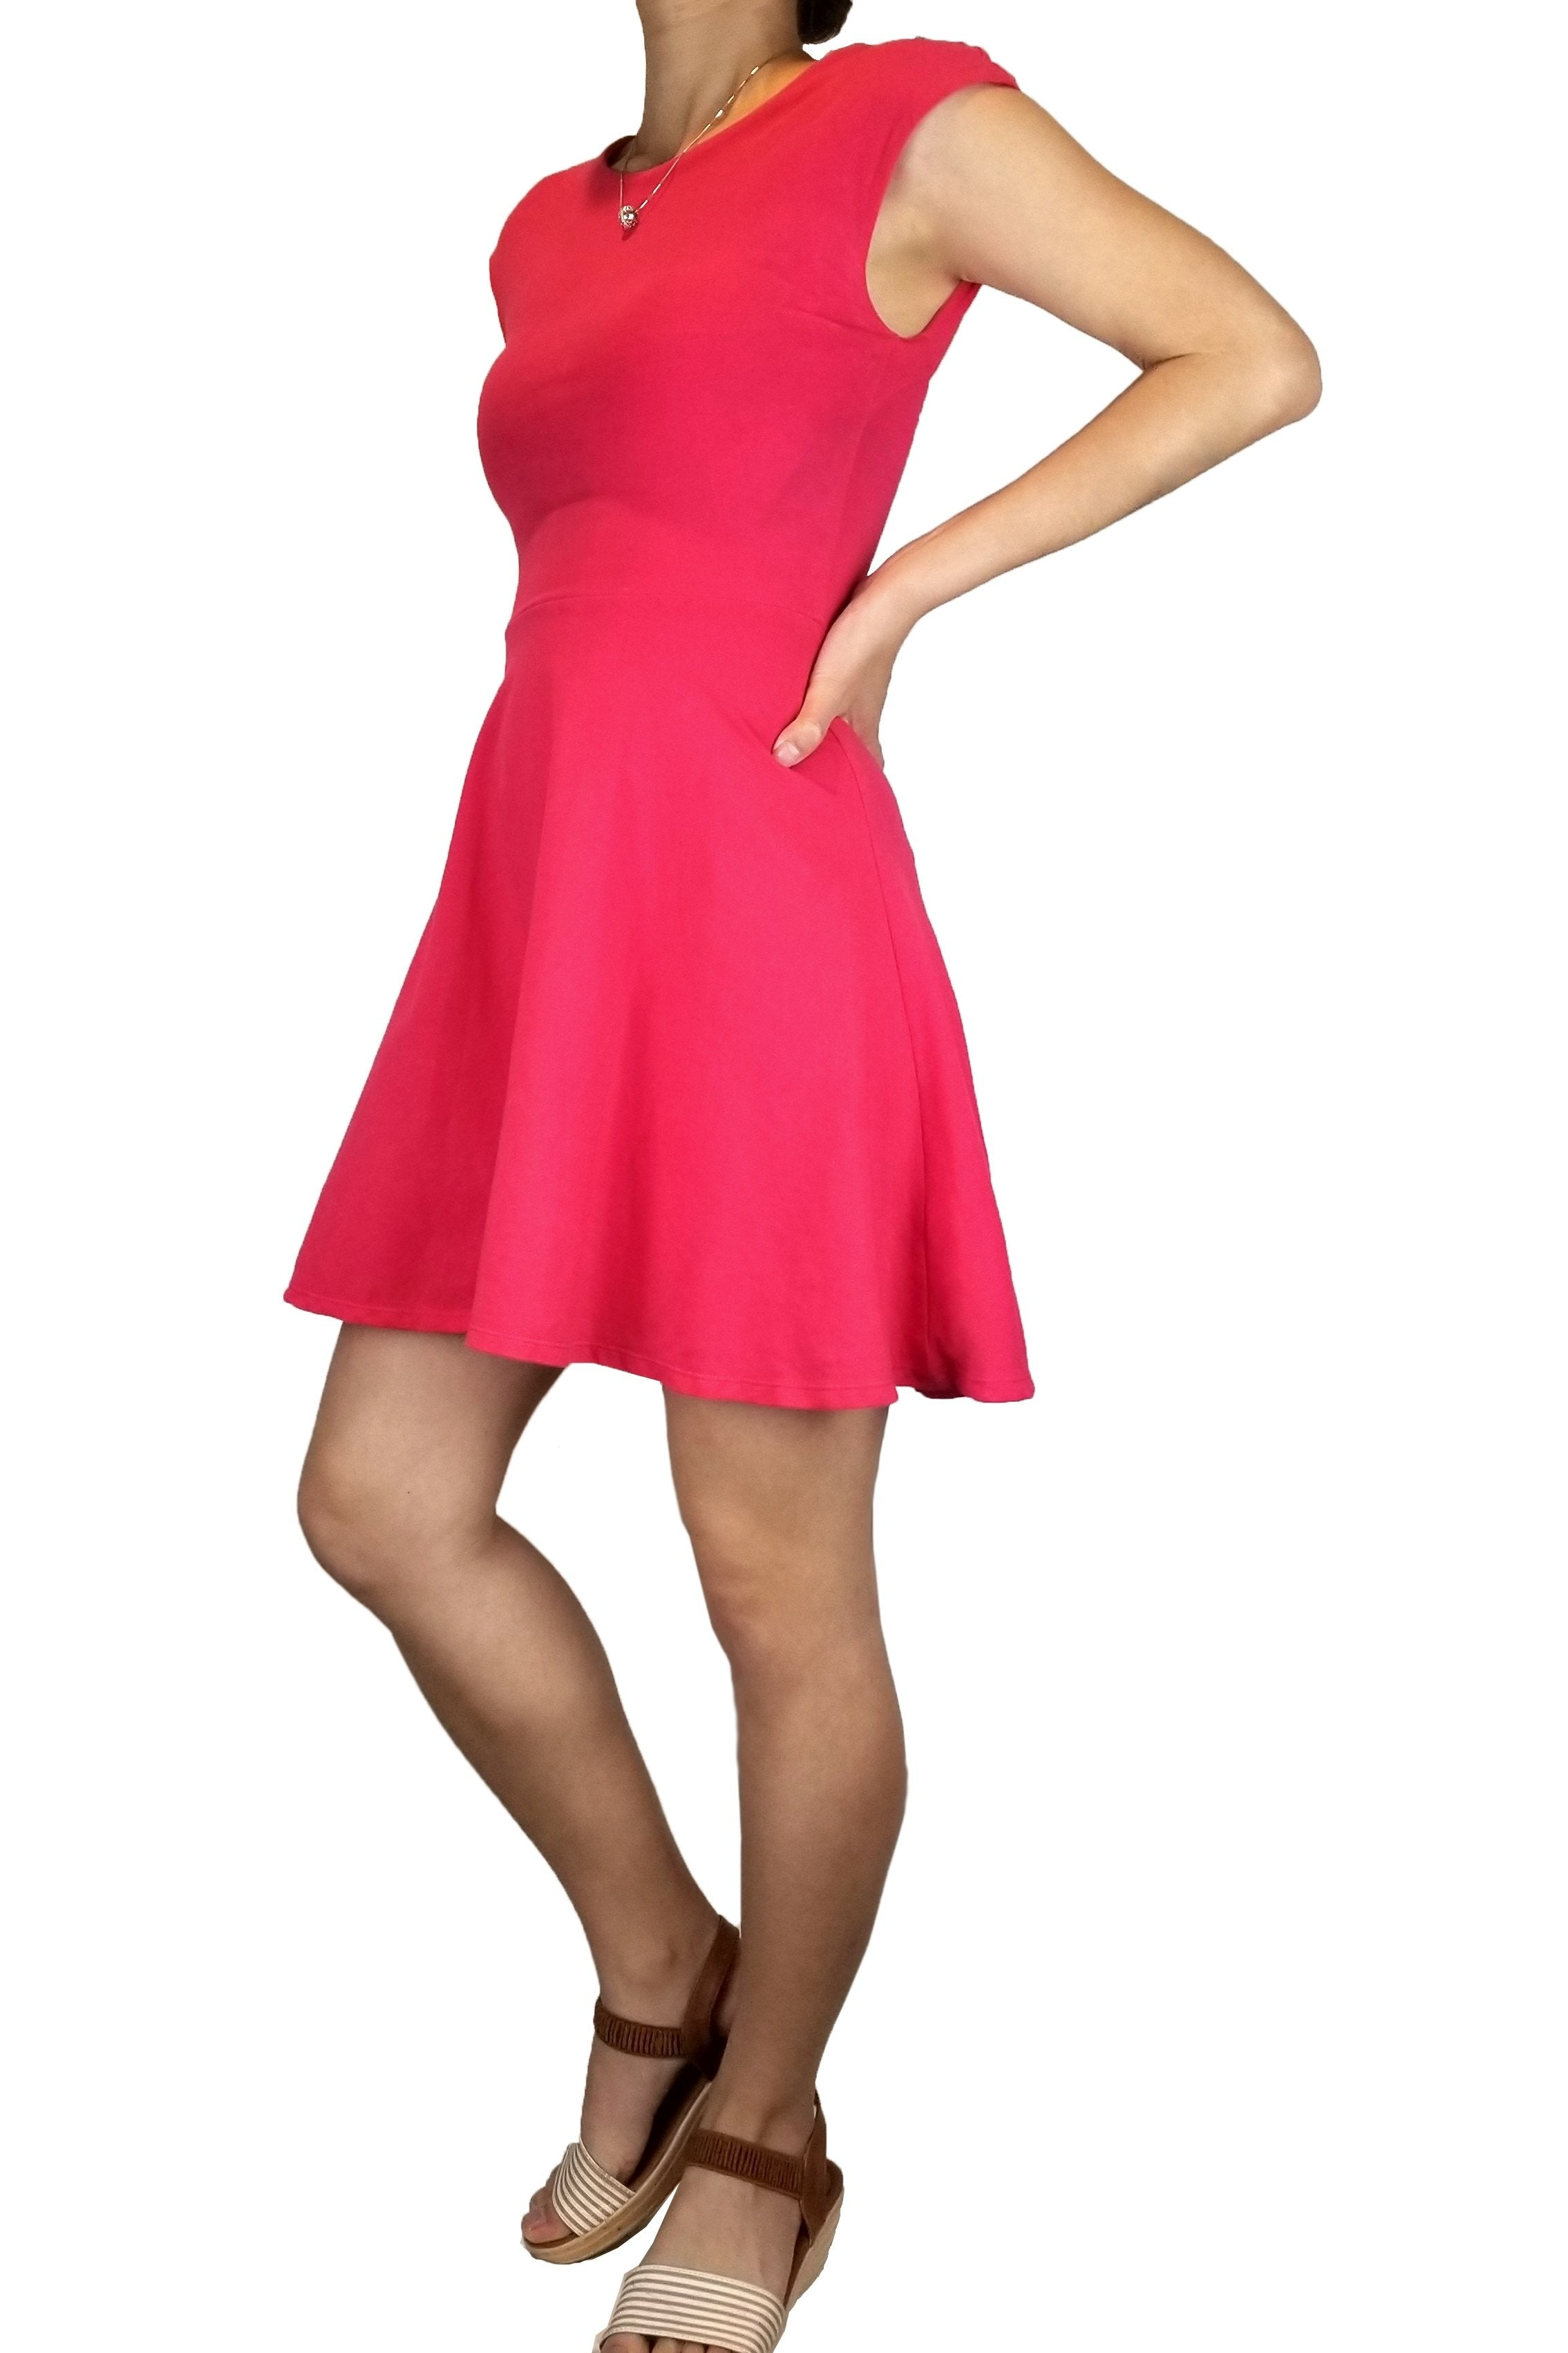 Talula Fit and Flare Mini Dress, Feel beautiful in this fit and flare, vibrant pink mini dress., Pink, 95% Cotton 5% Spandex, dress, summer vibrant pink dress, party hot pink dress, casual open back pink dress, fashion, pink tie dress